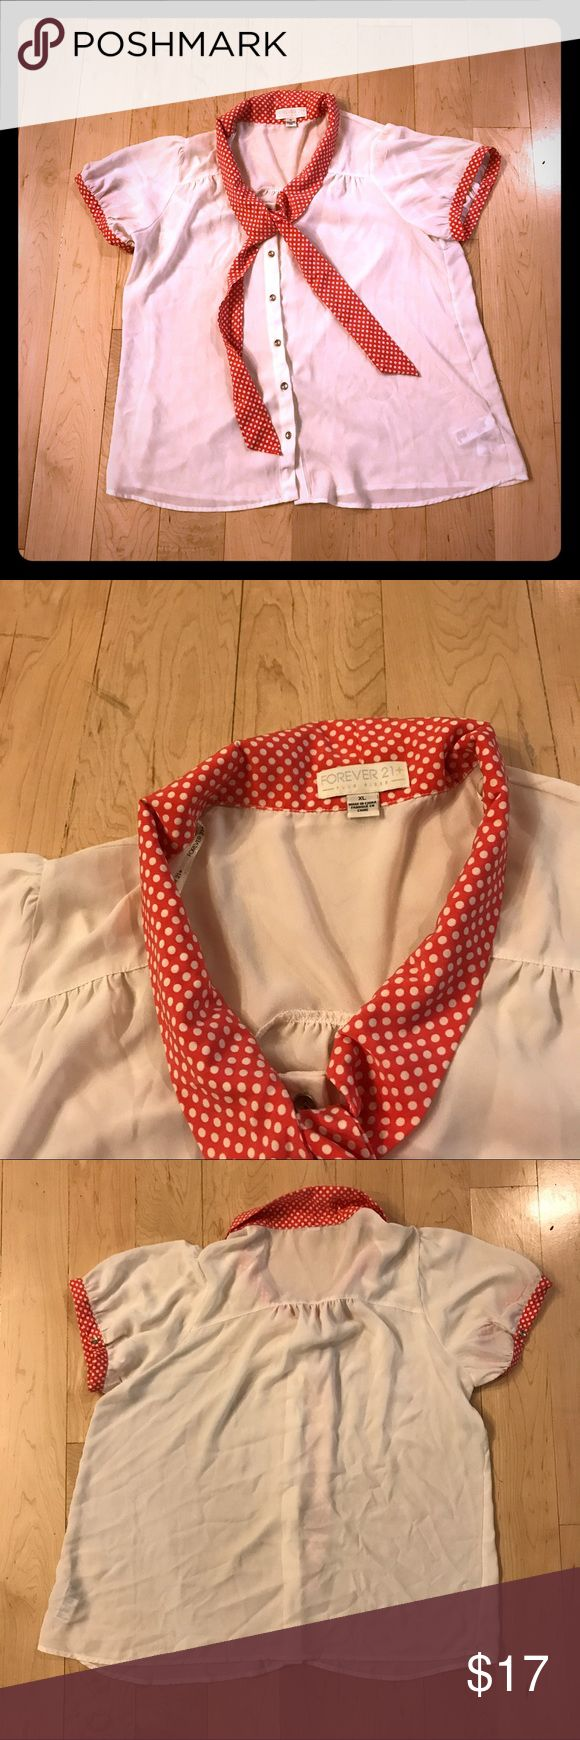 Forever 21+ coral tie polka dot blouse size XL Button down short sleeve blouse with coral polka dot tie and trim from Forever 21+, size XL. Bust: 46 inches. Length: 26 inches. Forever 21+ Tops Blouses